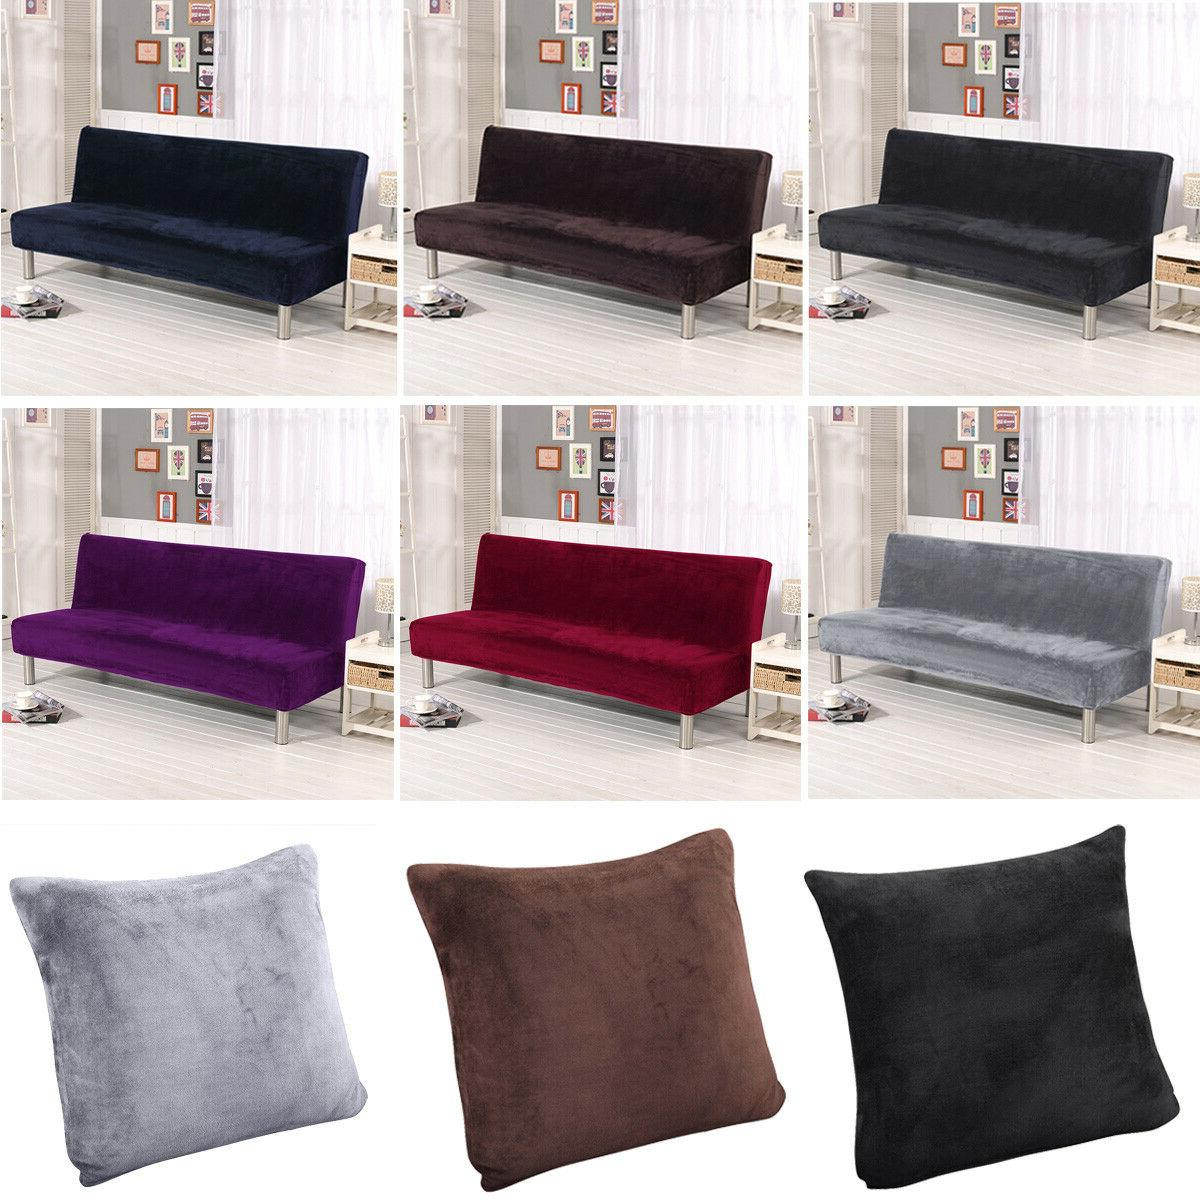 New Plush Armless Sofa Bed Cover Stretch Non-Slip Folding Co